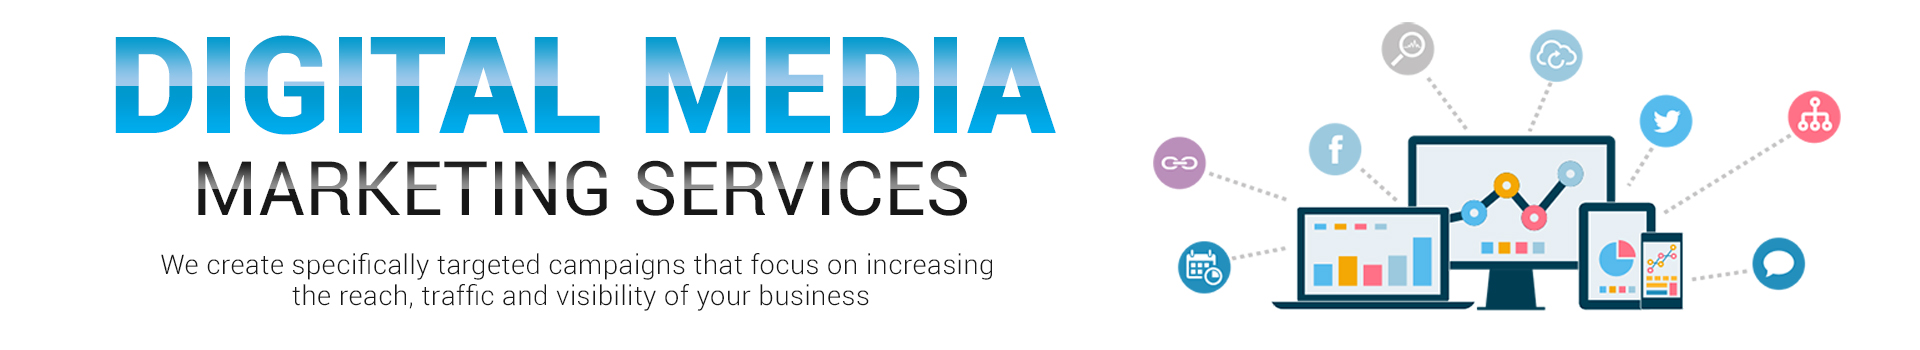 Digital Media Marketing Services | Quick Reach Media